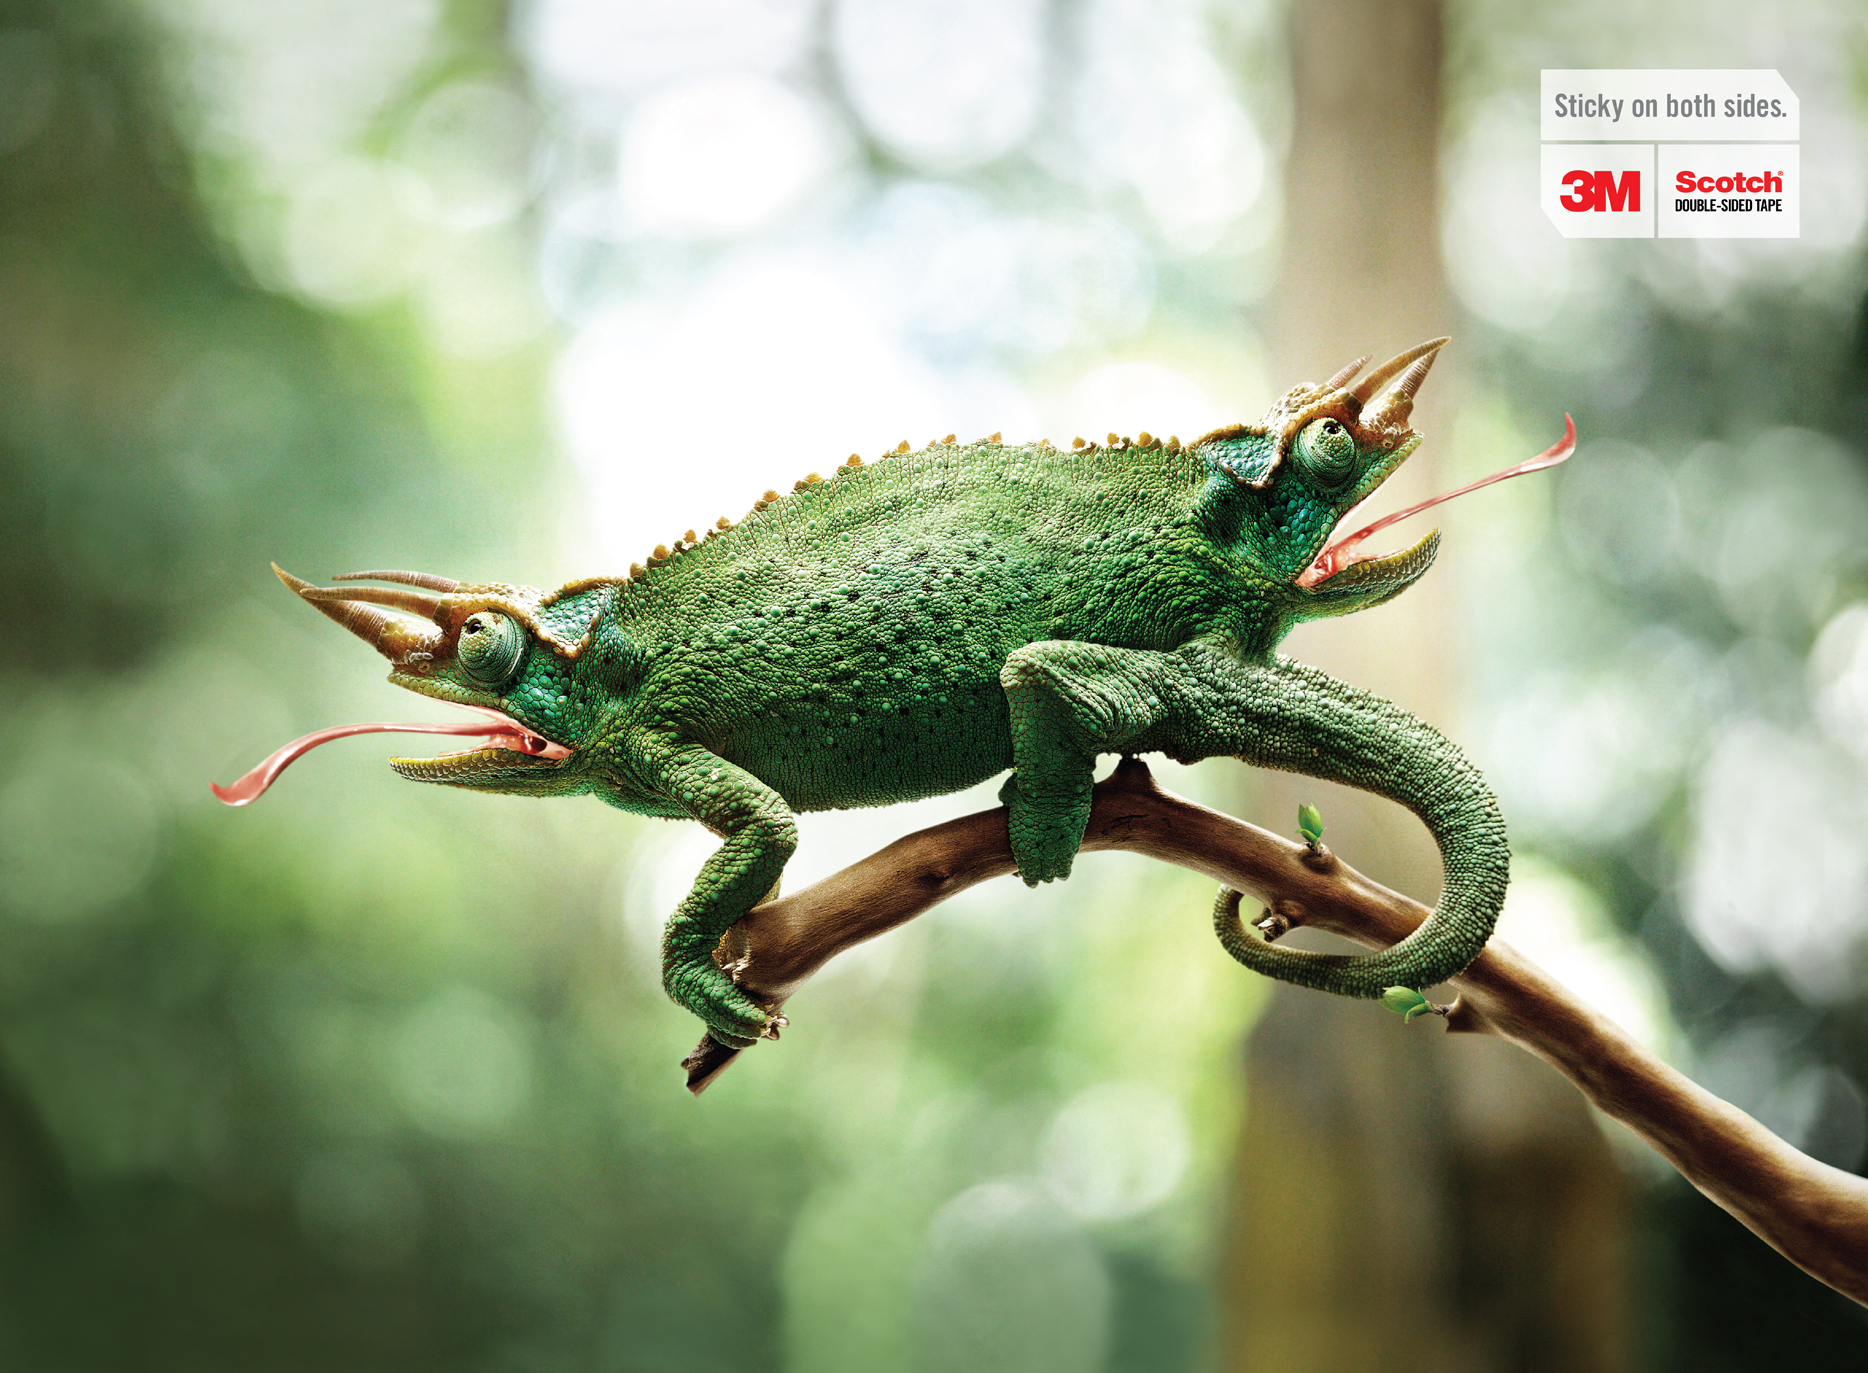 Print Ad 3m Scotch Double Sided Tape Chameleon